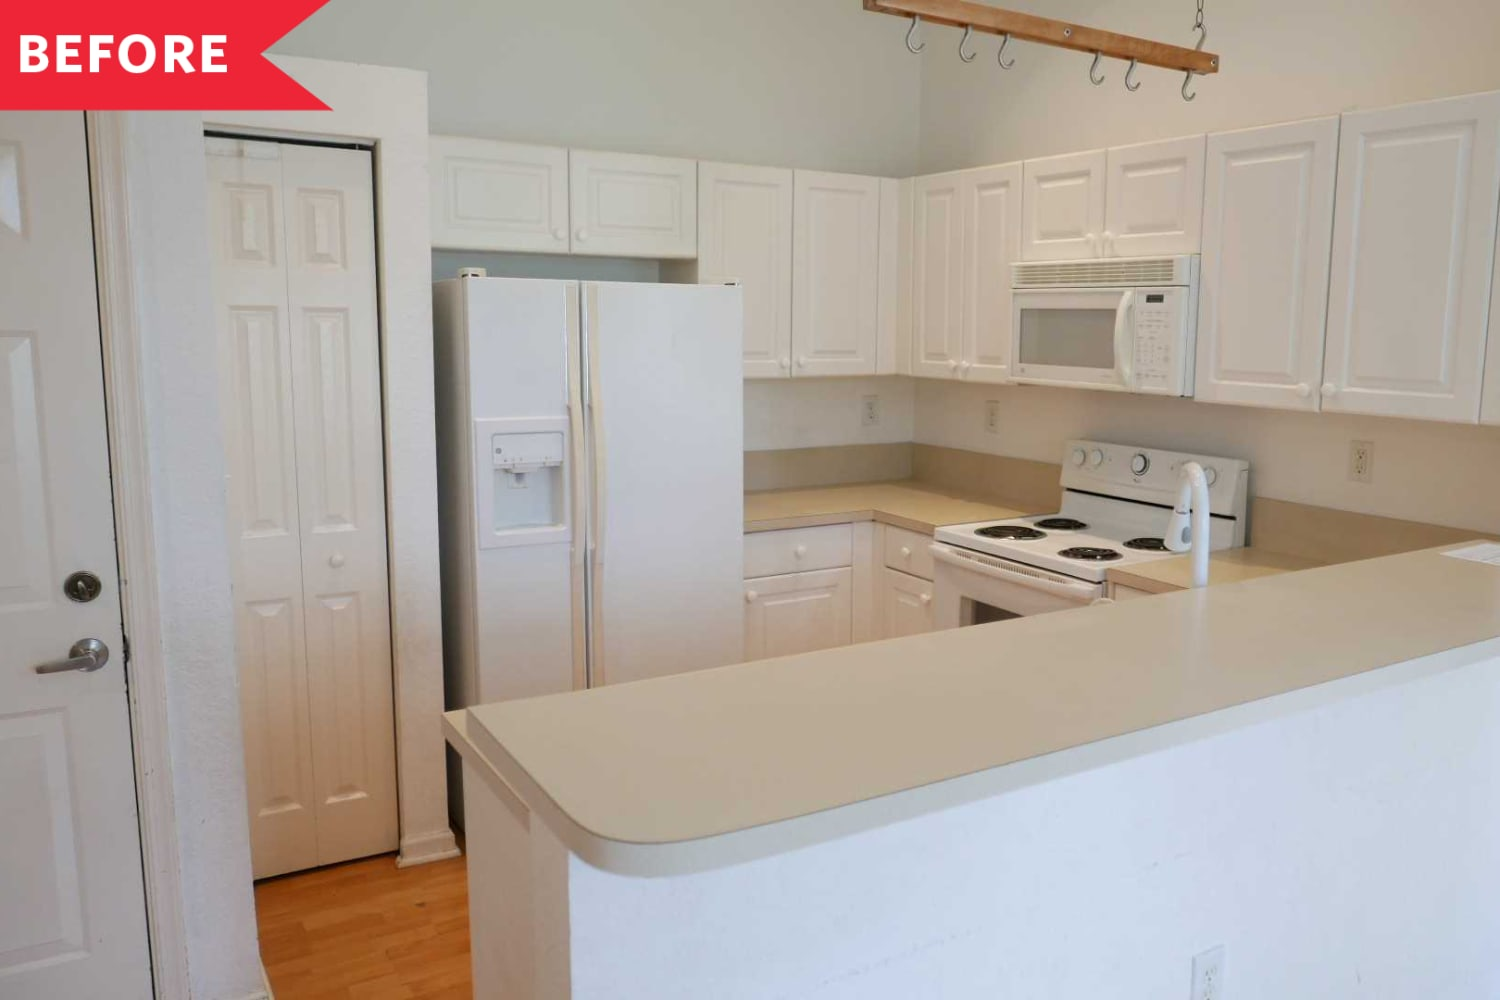 Before and After: This Kitchen's the Same Size, But Now Way More Functional